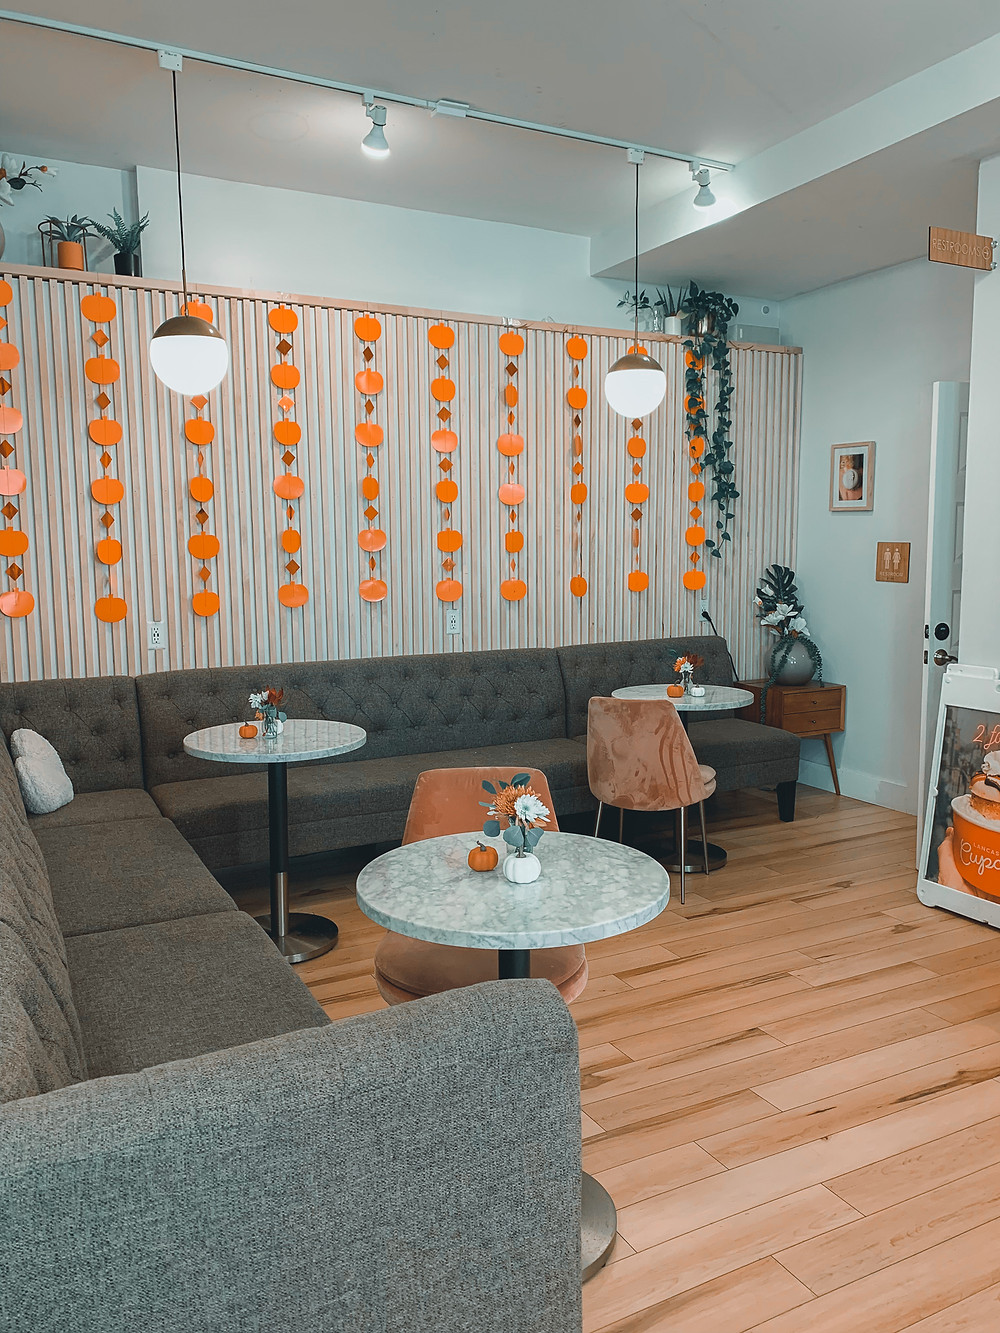 Lancaster Cupcake, wood floor, gray L shaped sectional couch, wall with wood detailing, small round granite tables, pink velvet chairs, orange pumpkin streamers